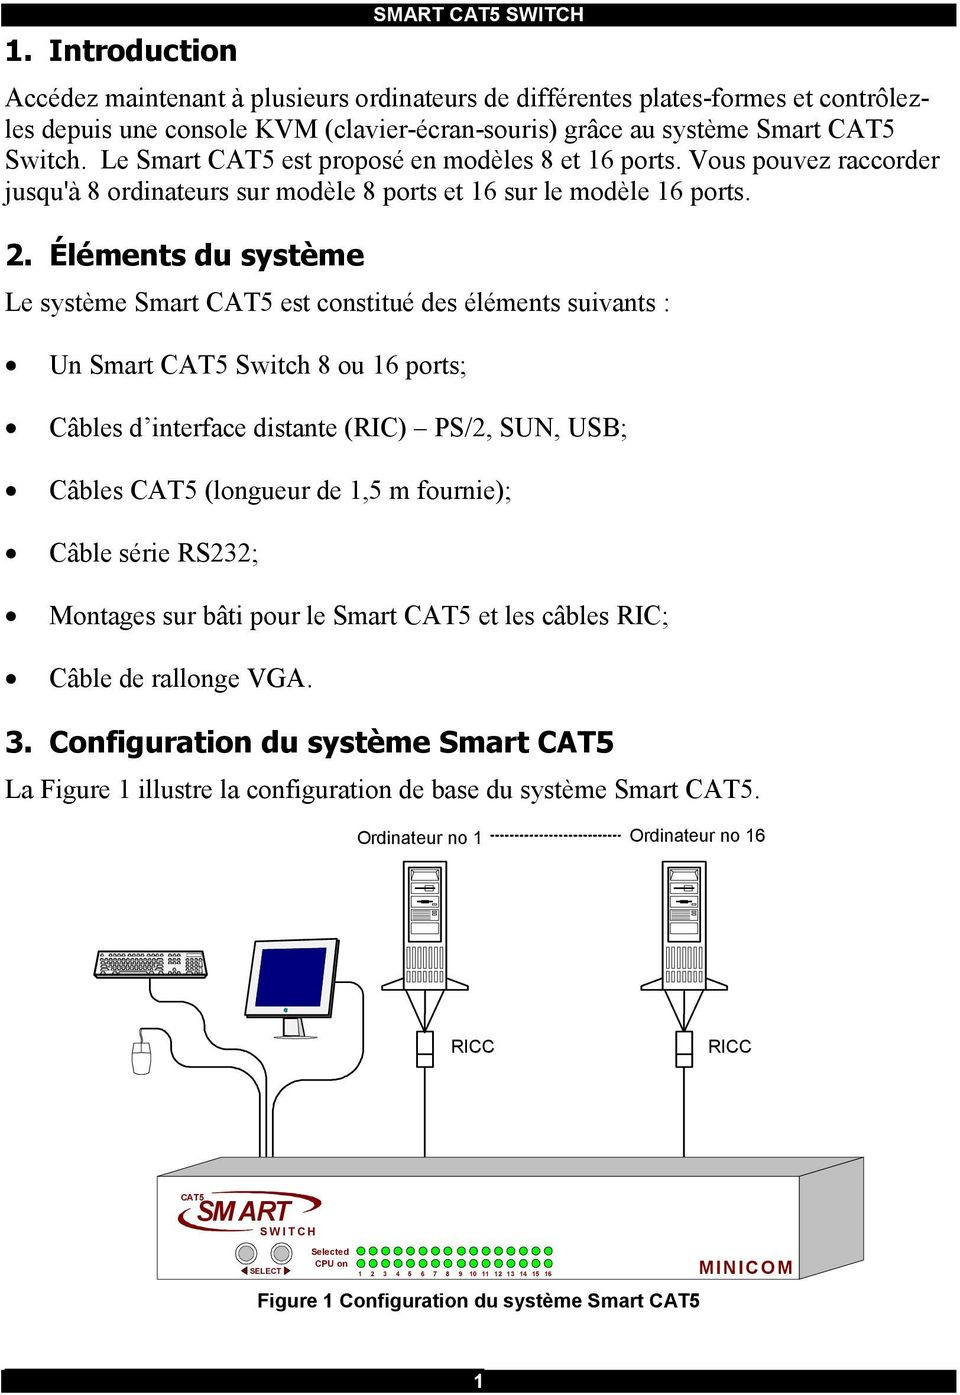 Éléments du système Le système Smart CAT5 est constitué des éléments suivants : Un Smart CAT5 Switch 8 ou 16 ports; Câbles d interface distante (RIC) PS/2, SUN, USB; Câbles CAT5 (longueur de 1,5 m